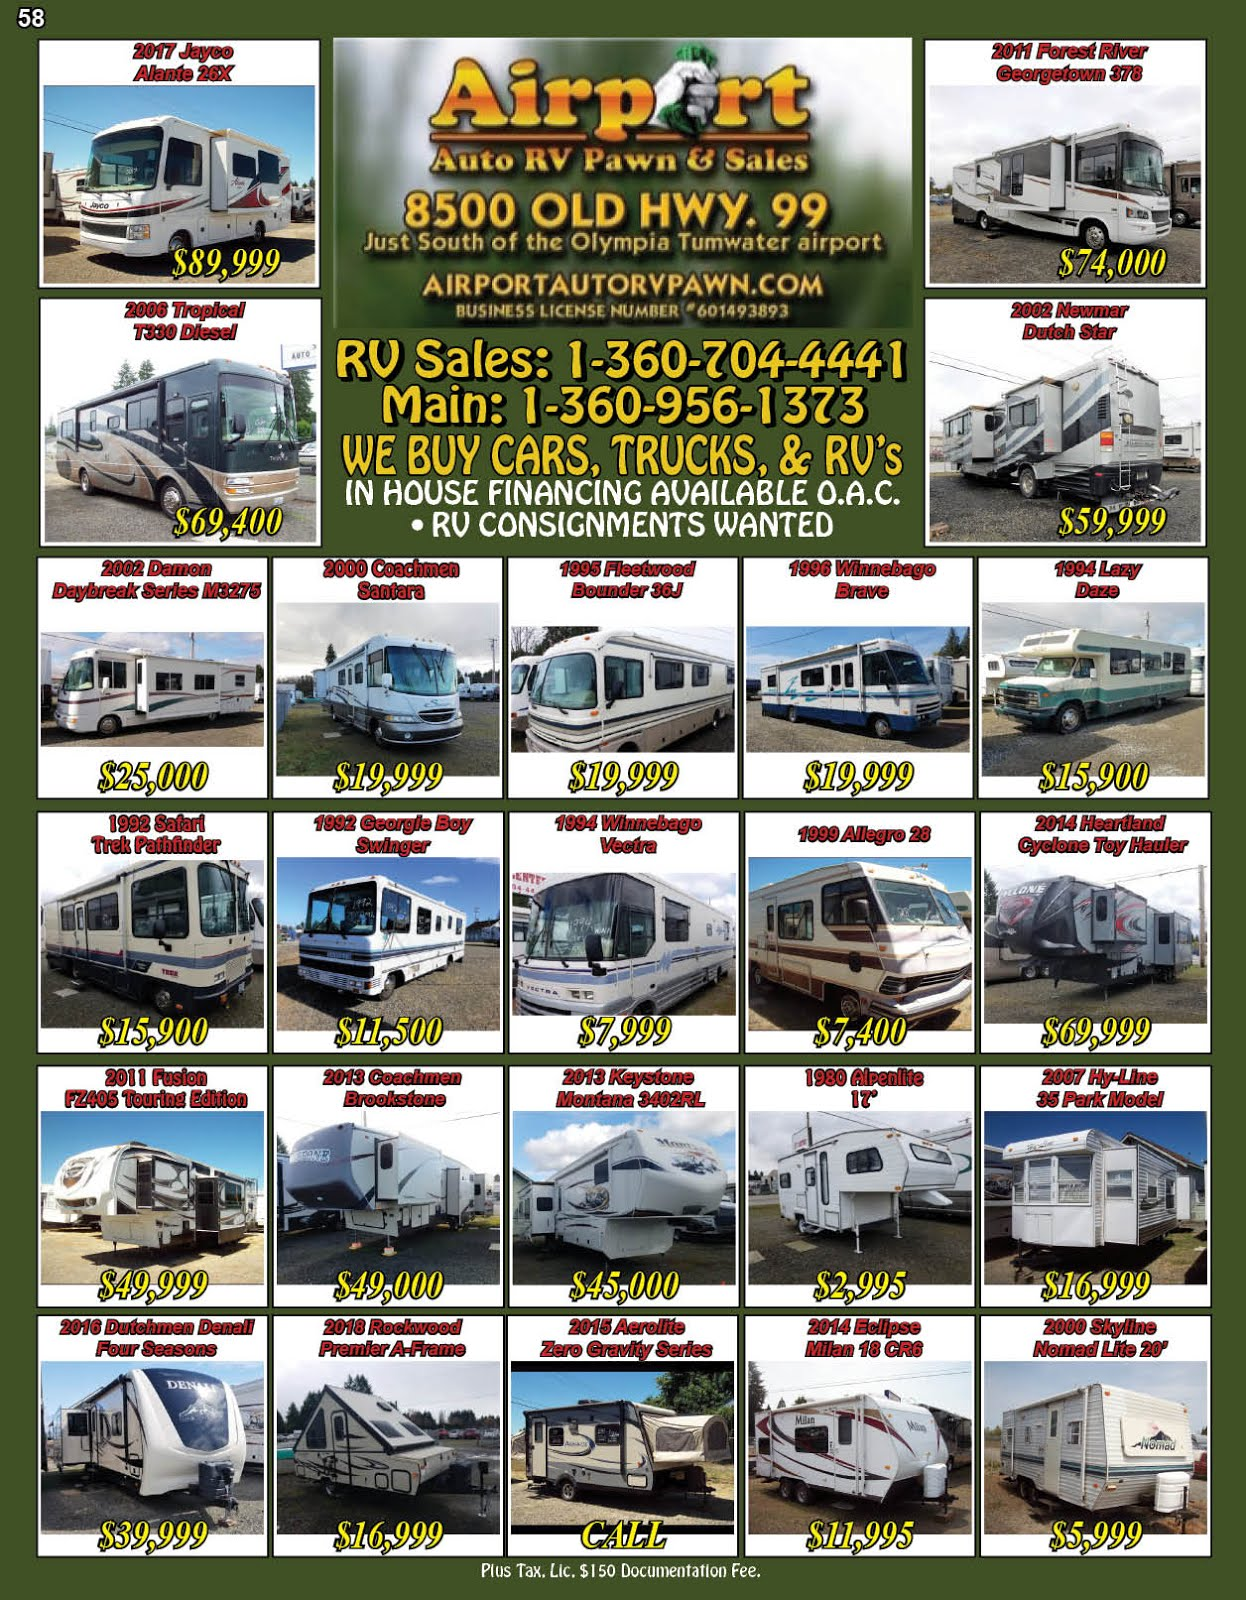 Airport Auto RV & Pawn